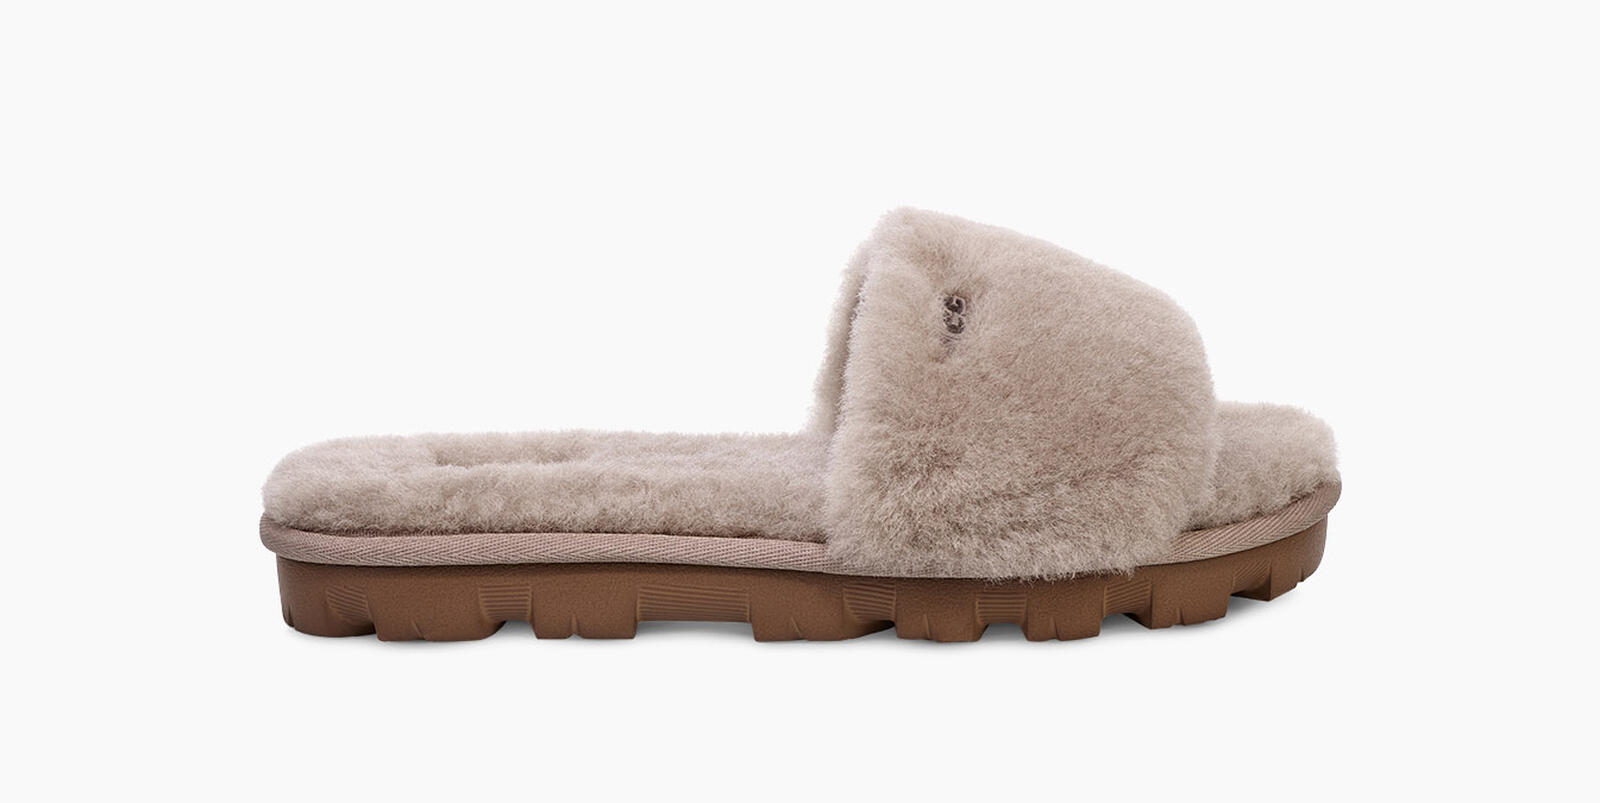 Cozette Slipper